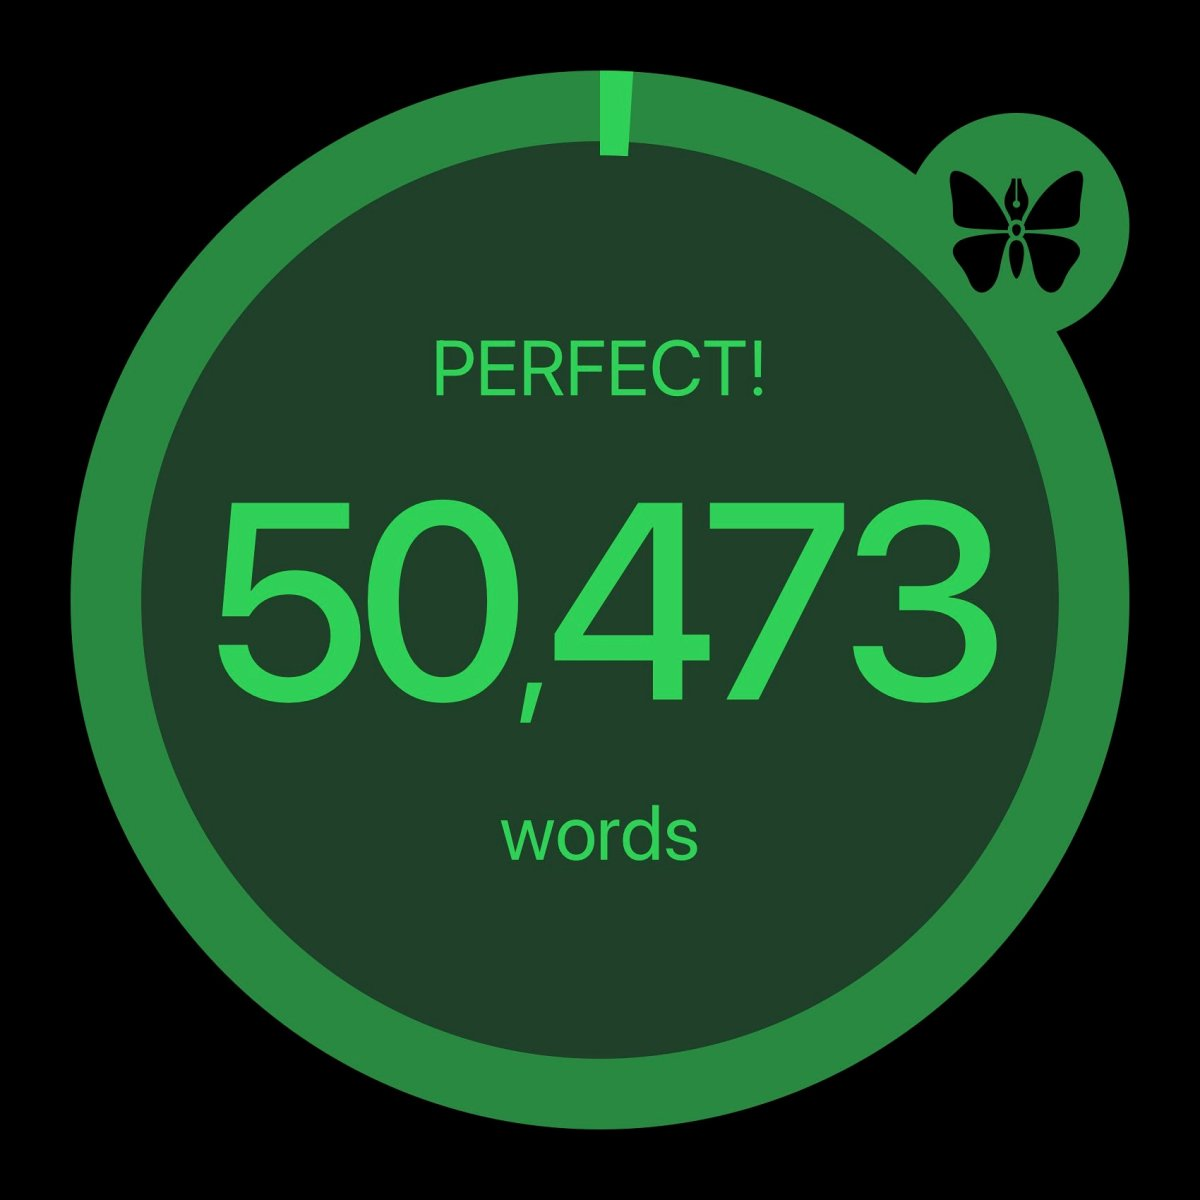 A word count image showing 50,473 words written